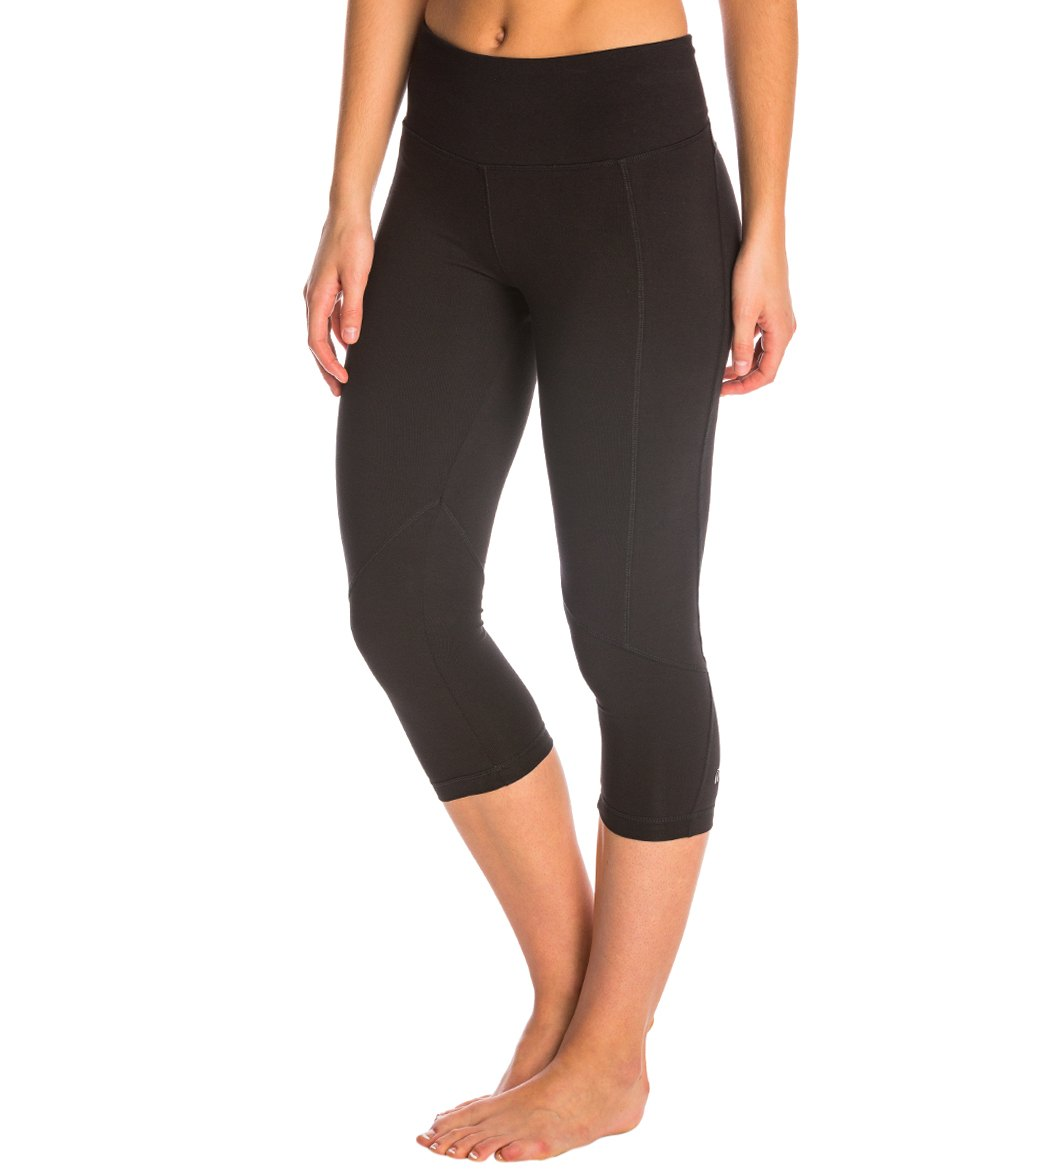 87dac78865f1c1 Marika Carrie Ultimate Slimming Cotton Yoga Capris at YogaOutlet.com ...